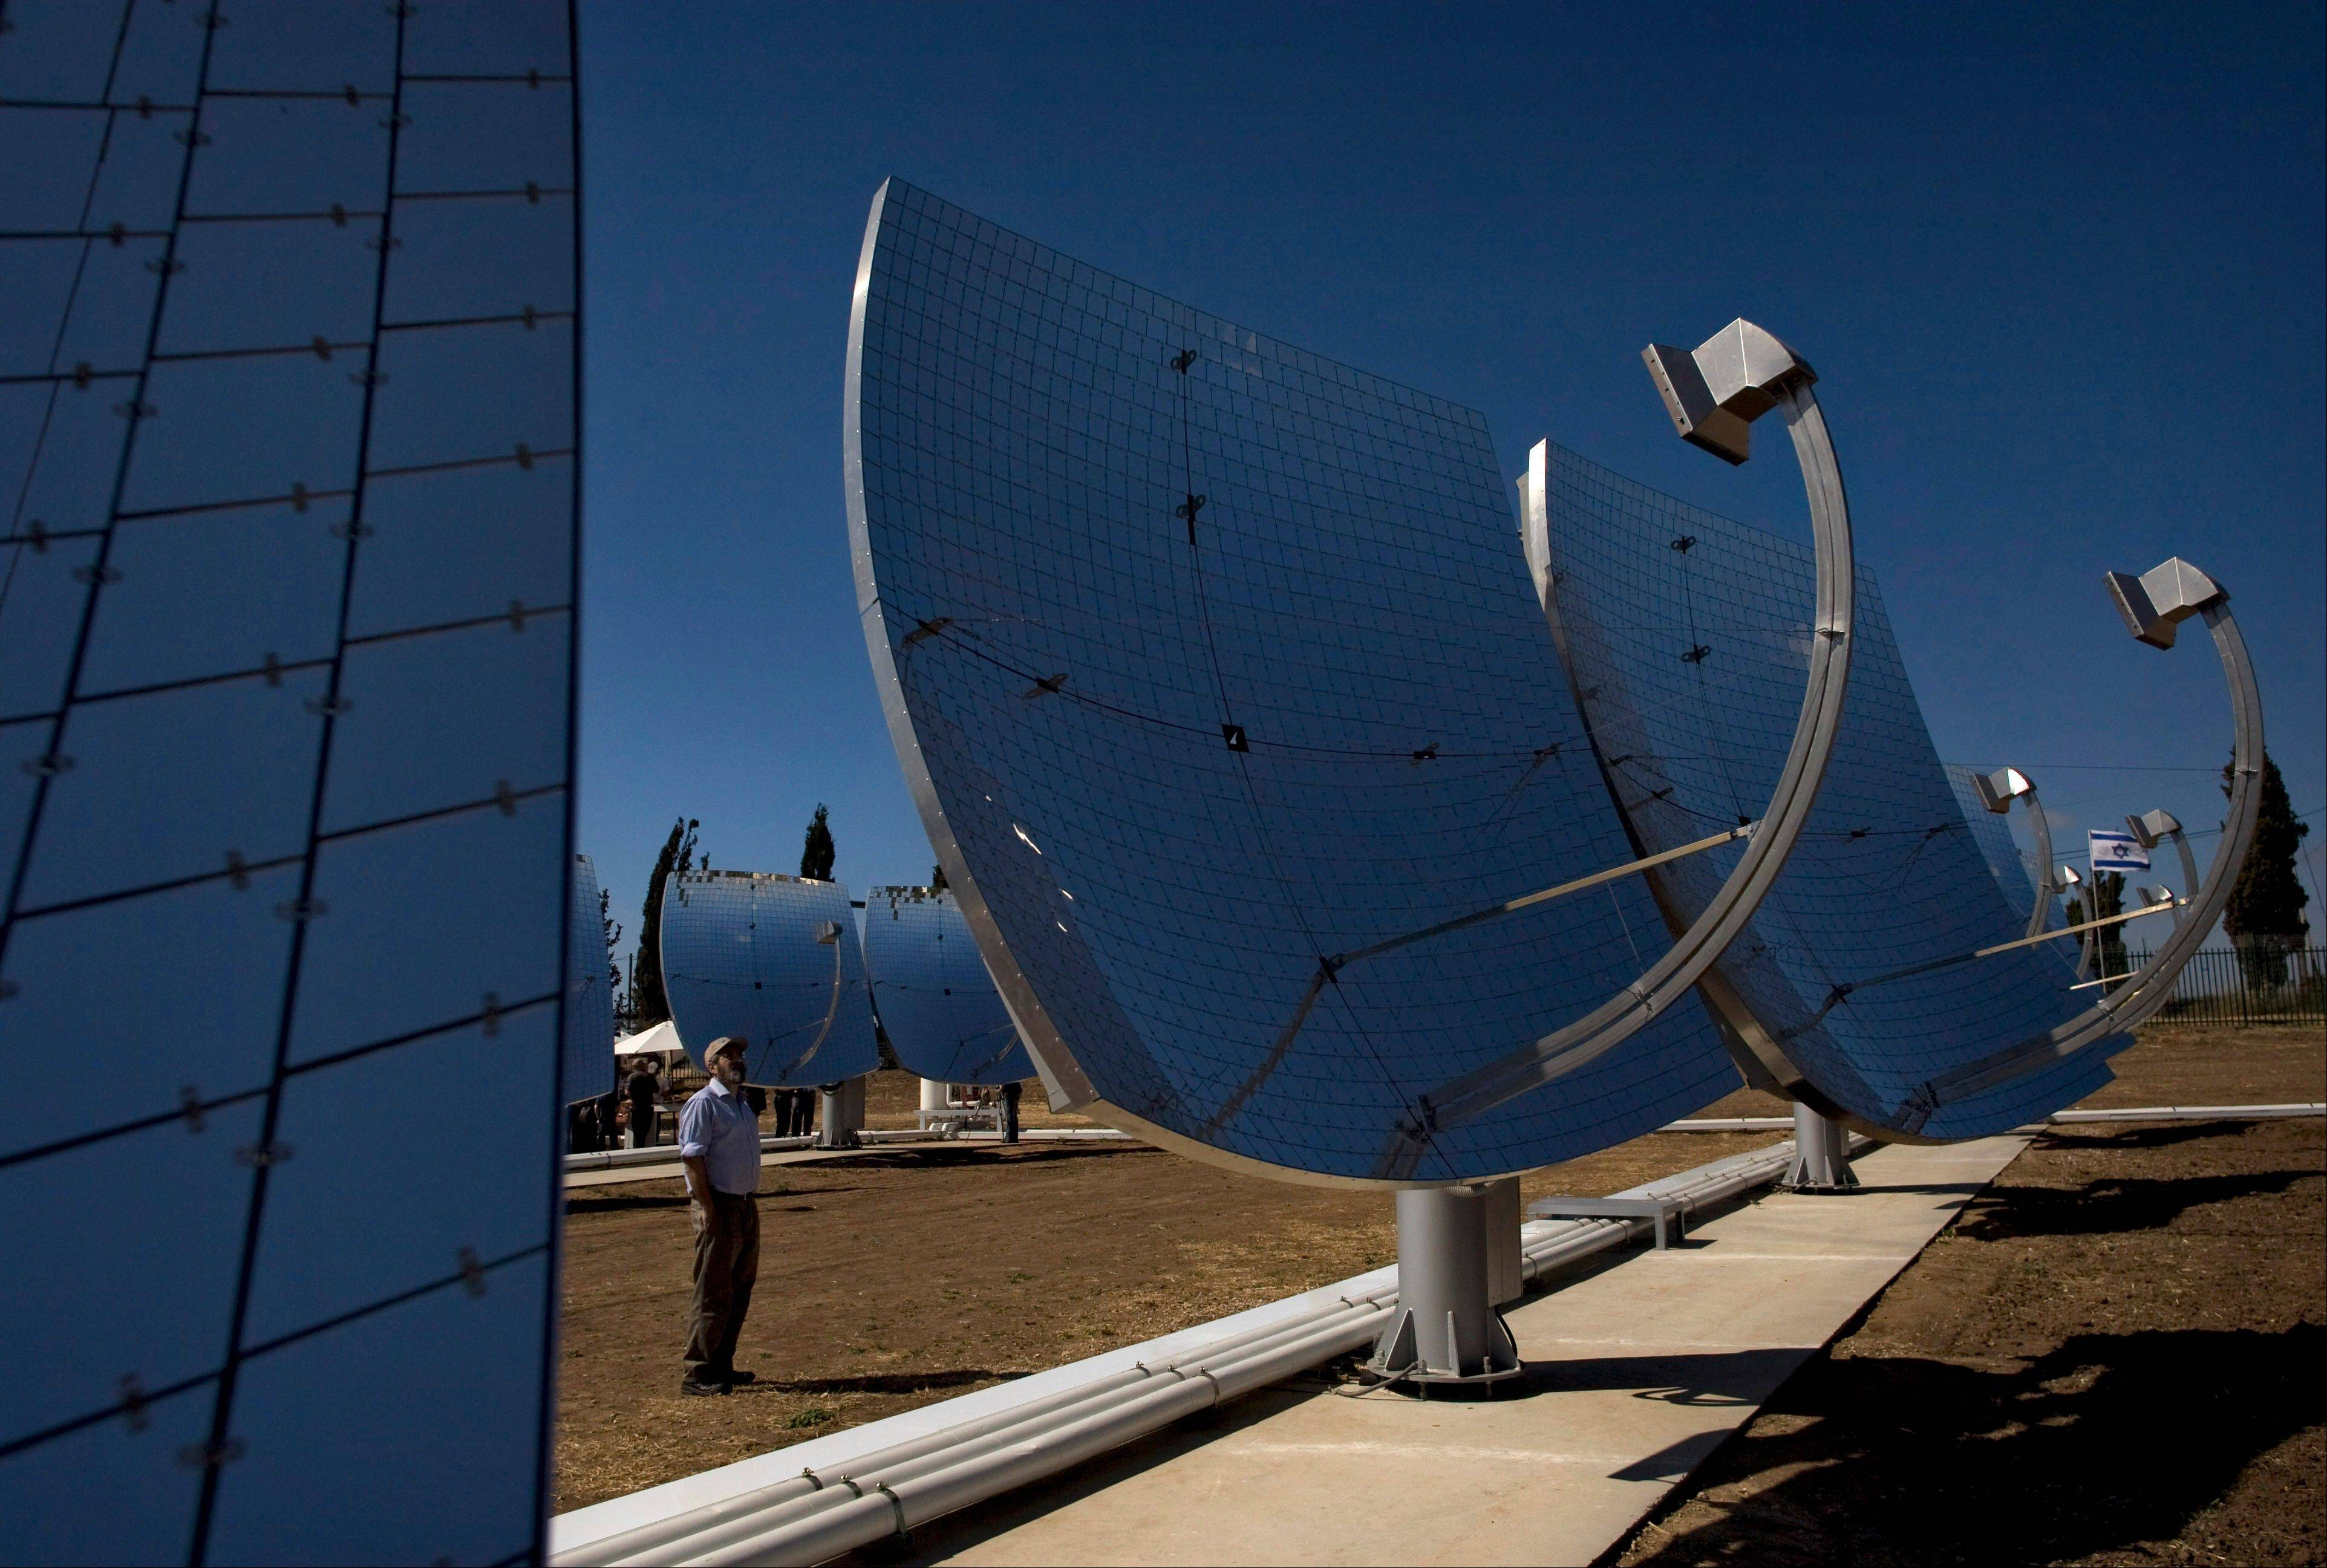 Solar dishes are seen at a solar farm, which according to the manufacturer, are revolutionary in the way they efficiently produce maximum energy using a minimal area, in Kibbutz Kvutzat Yavne, Israel. Israel has a peak solar capacity of 212 megawatts, the vast majority of which comes from rooftop installations, that accounts for less than 2 percent of the nationwide capacity according to the government-owned Israel Electric Corporation.